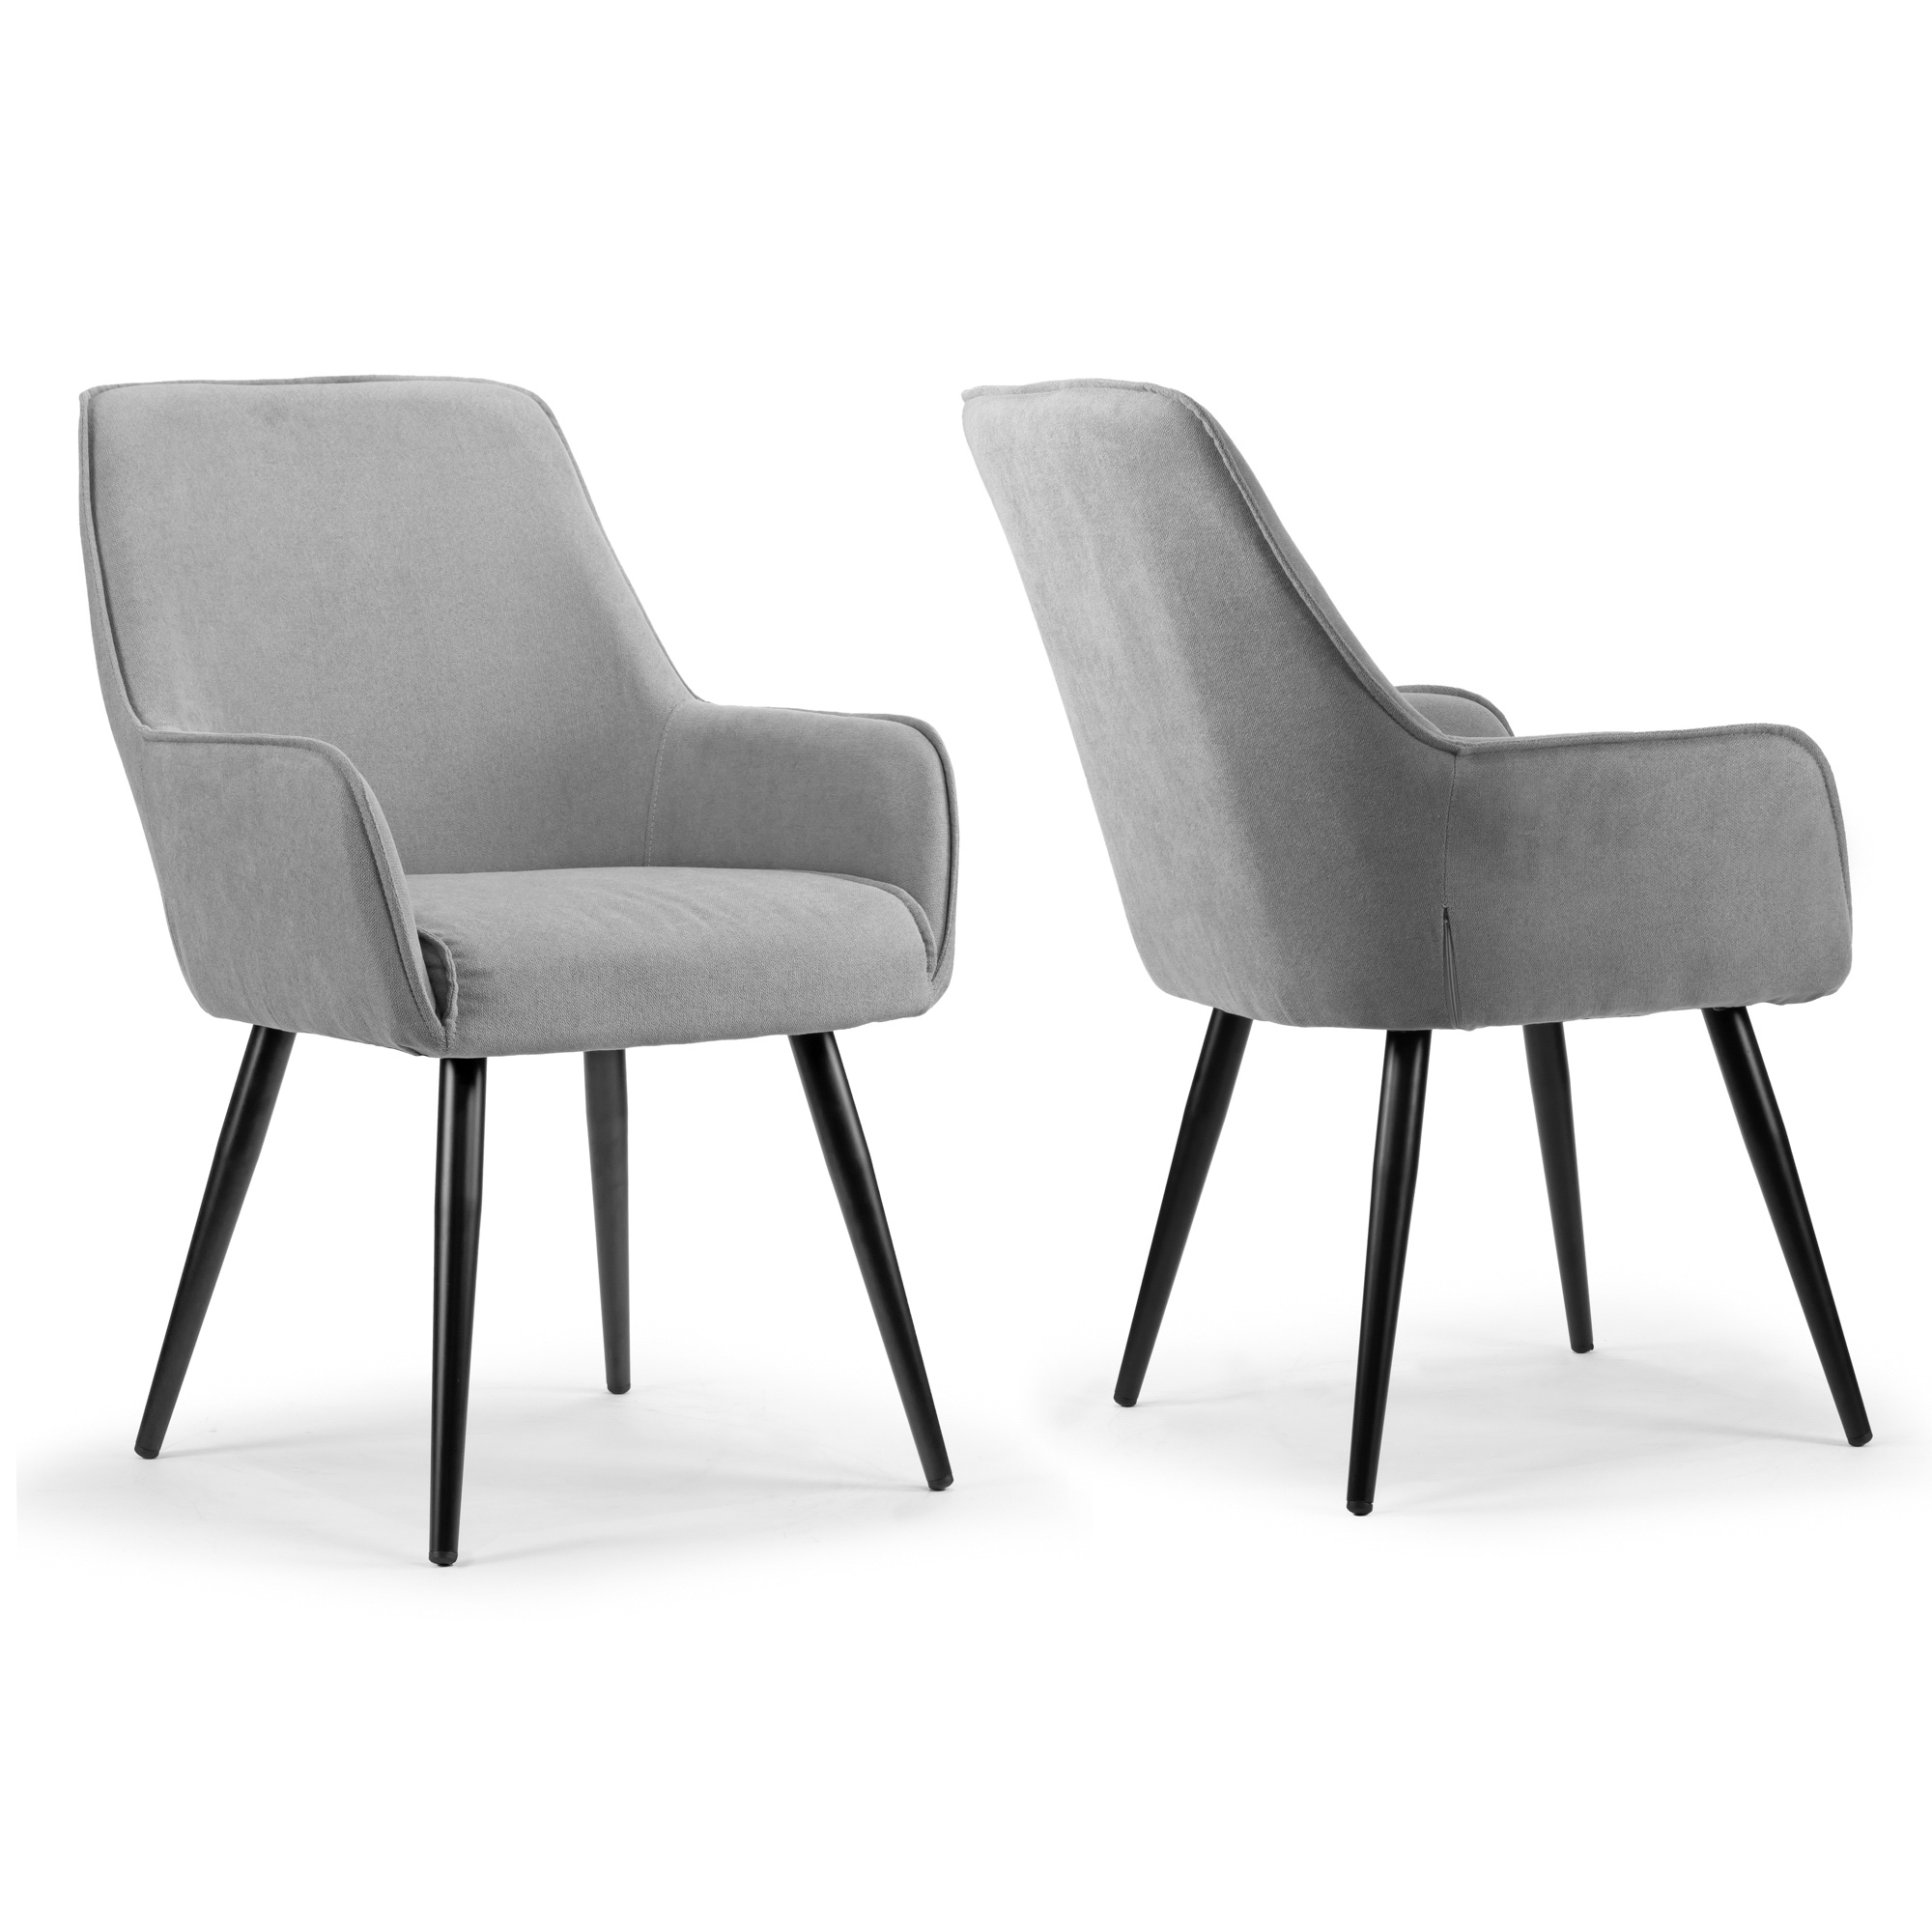 Fine Set Of 2 Amir Grey Dining Chair With Black Metal Legs And Square Arms Ncnpc Chair Design For Home Ncnpcorg